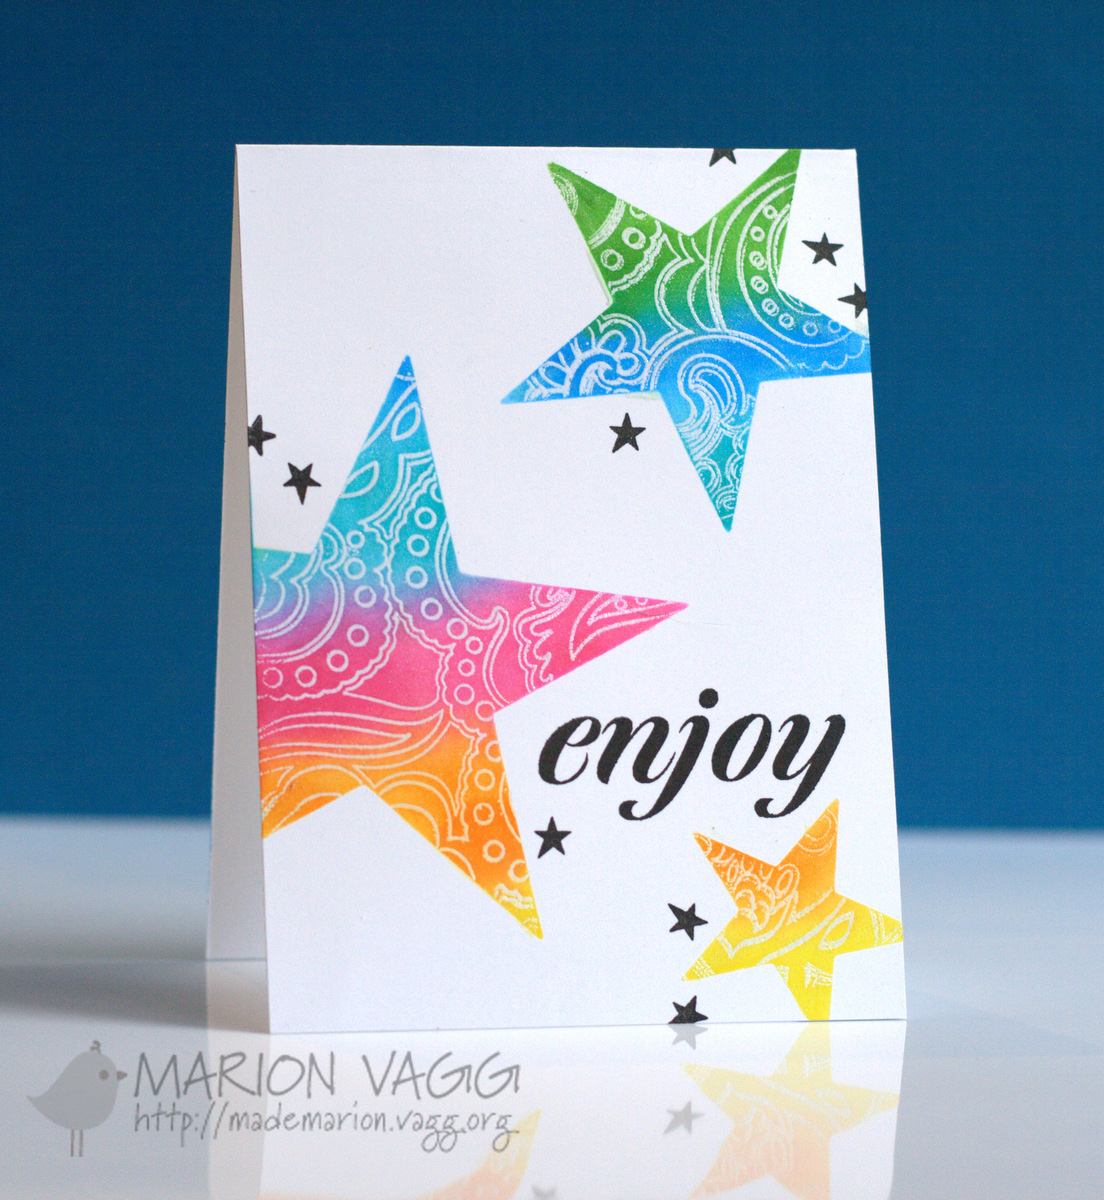 Enjoy|Marion Vagg